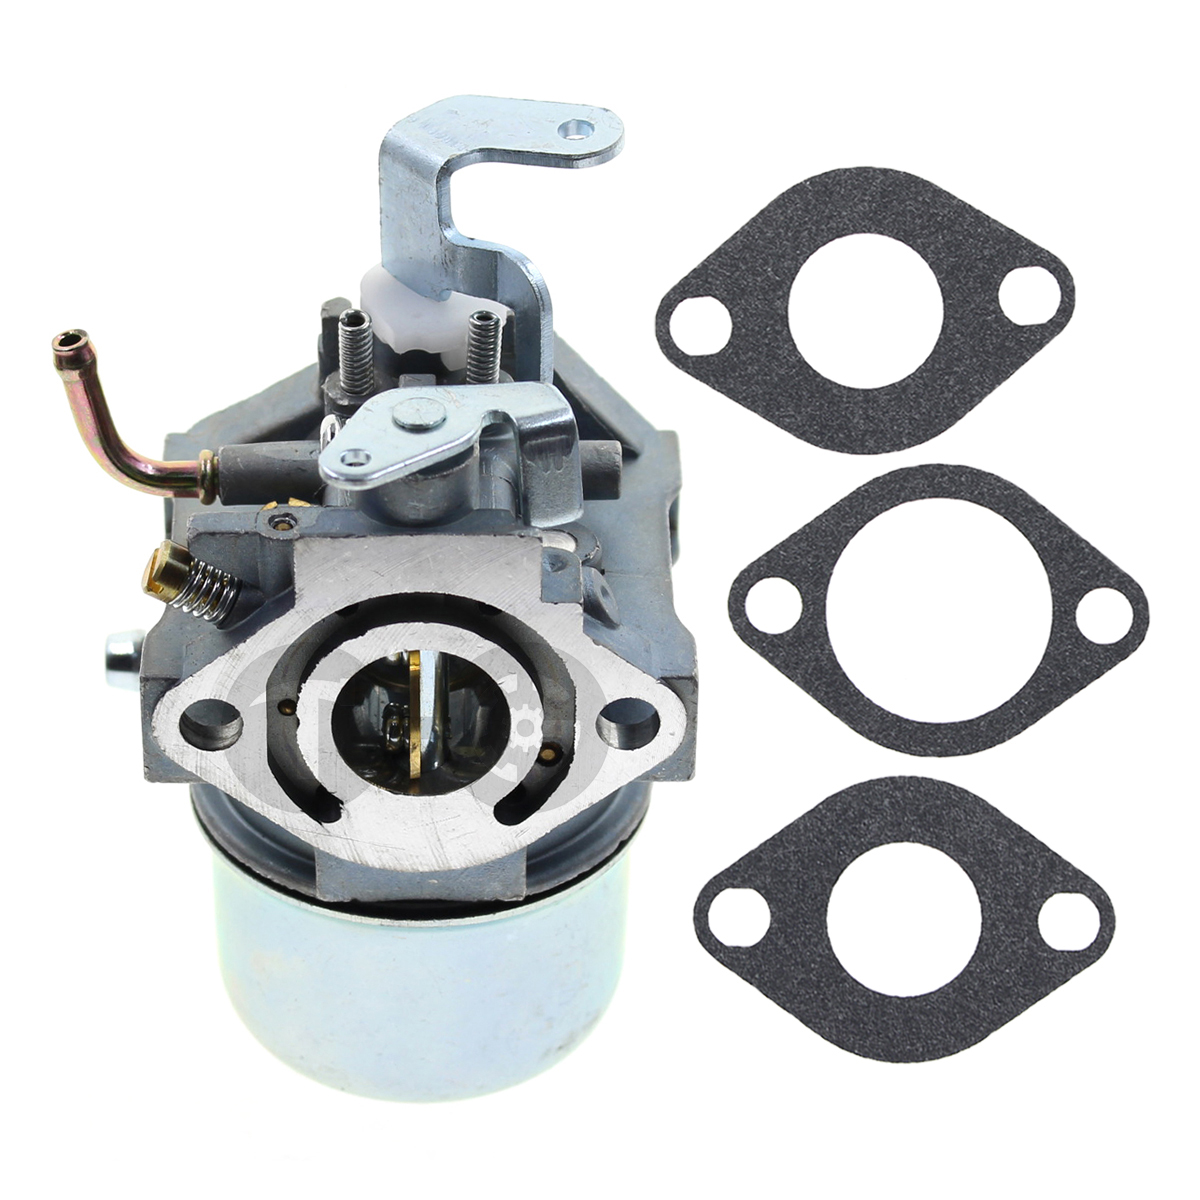 Carb Carburetor For Toro 957935 Suzuki 38430 38431 38435 38436 38180 Snowthrower